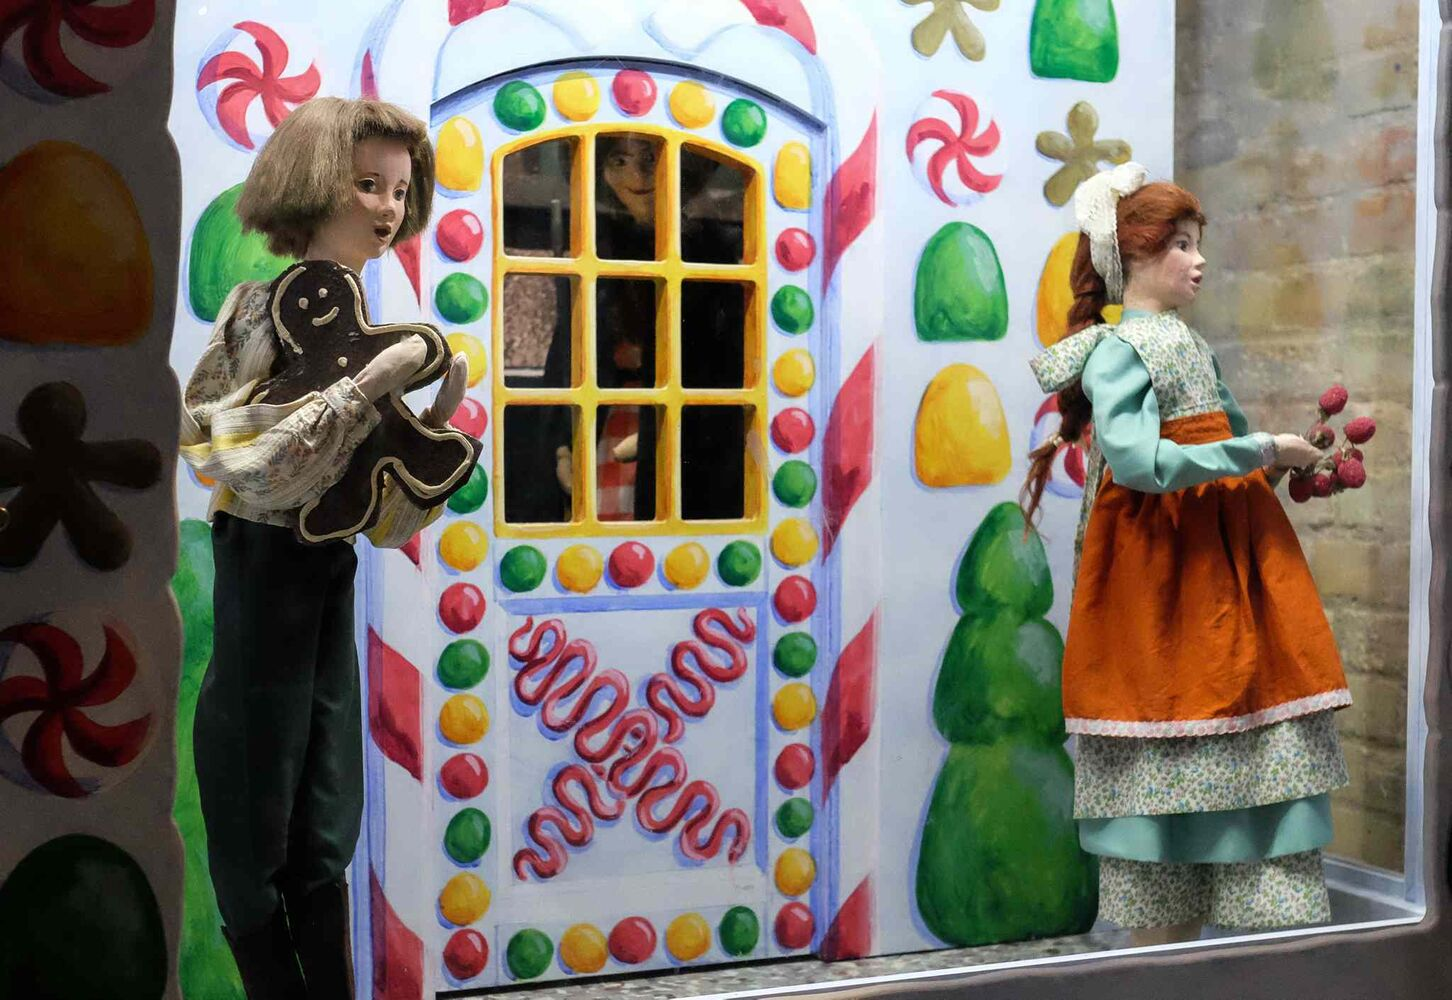 Hansel and Gretel. (MIKE DEAL / WINNIPEG FREE PRESS)